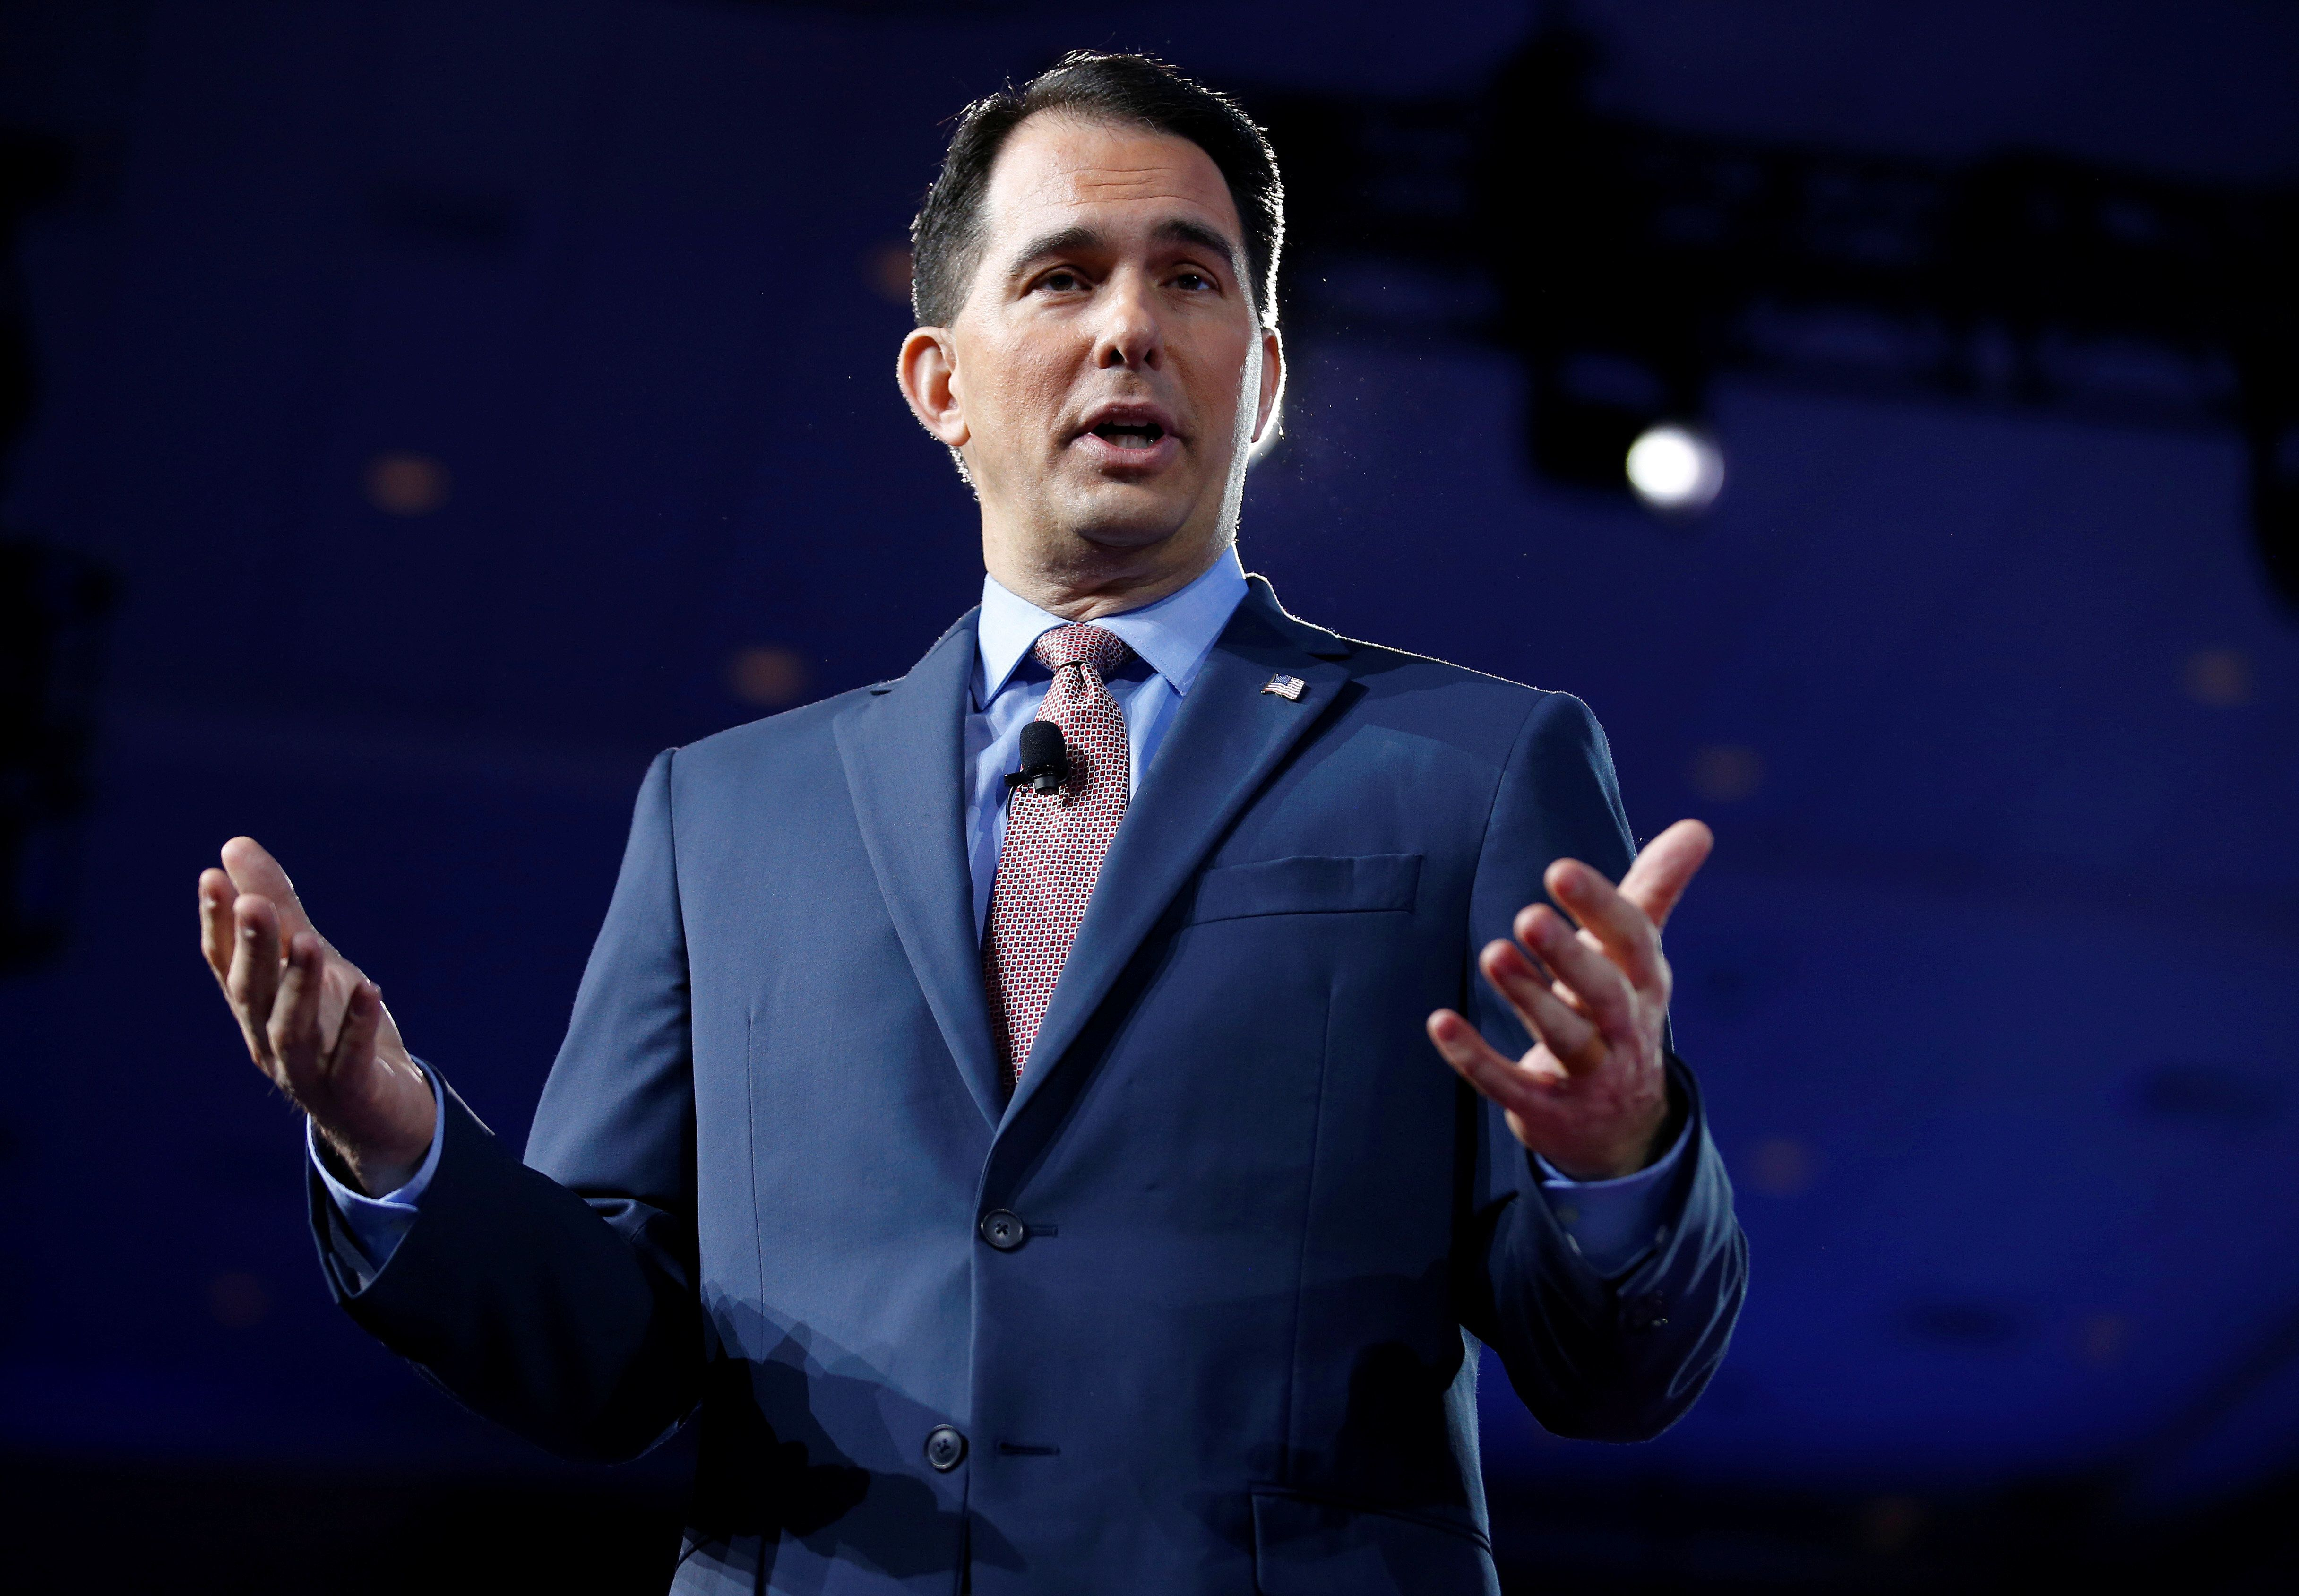 Wisconsin Governor Scott Walker speaks during the Conservative Political Action Conference (CPAC) in National Harbor, Maryland, U.S., February 23, 2017.      REUTERS/Joshua Roberts